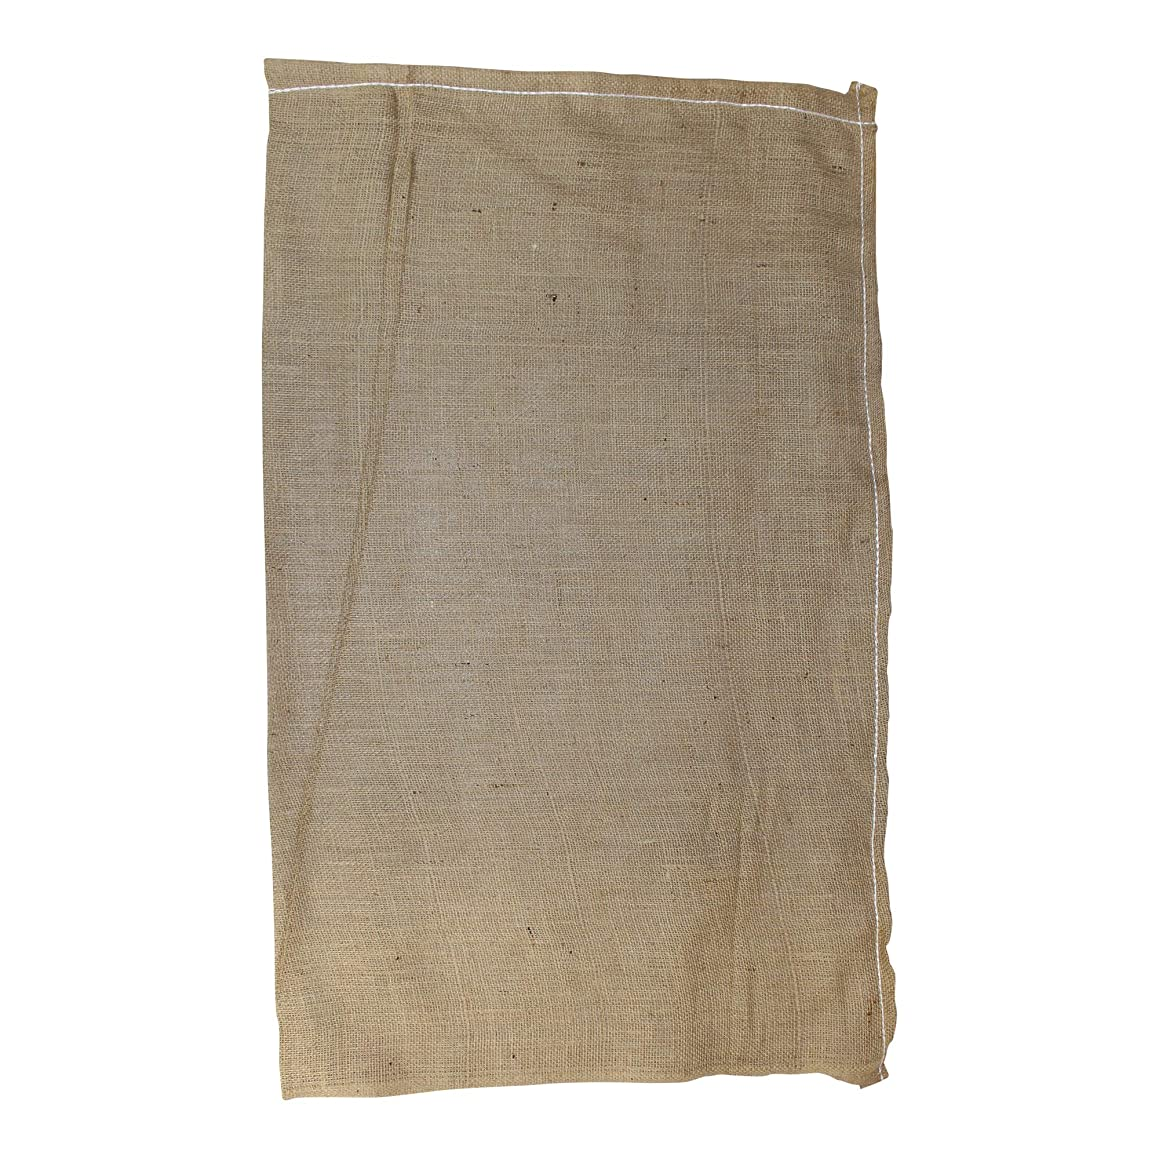 Large Burlap Bags - SGT KNOTS - Burlap Sack (8 Pack) - Gunny Sack Potato Sack Race - 23 in x 40 in Gunny Sacks - Linen Burlap Sac for Adult Bag Races - Adults & Kids Sack Obstacle Course Games